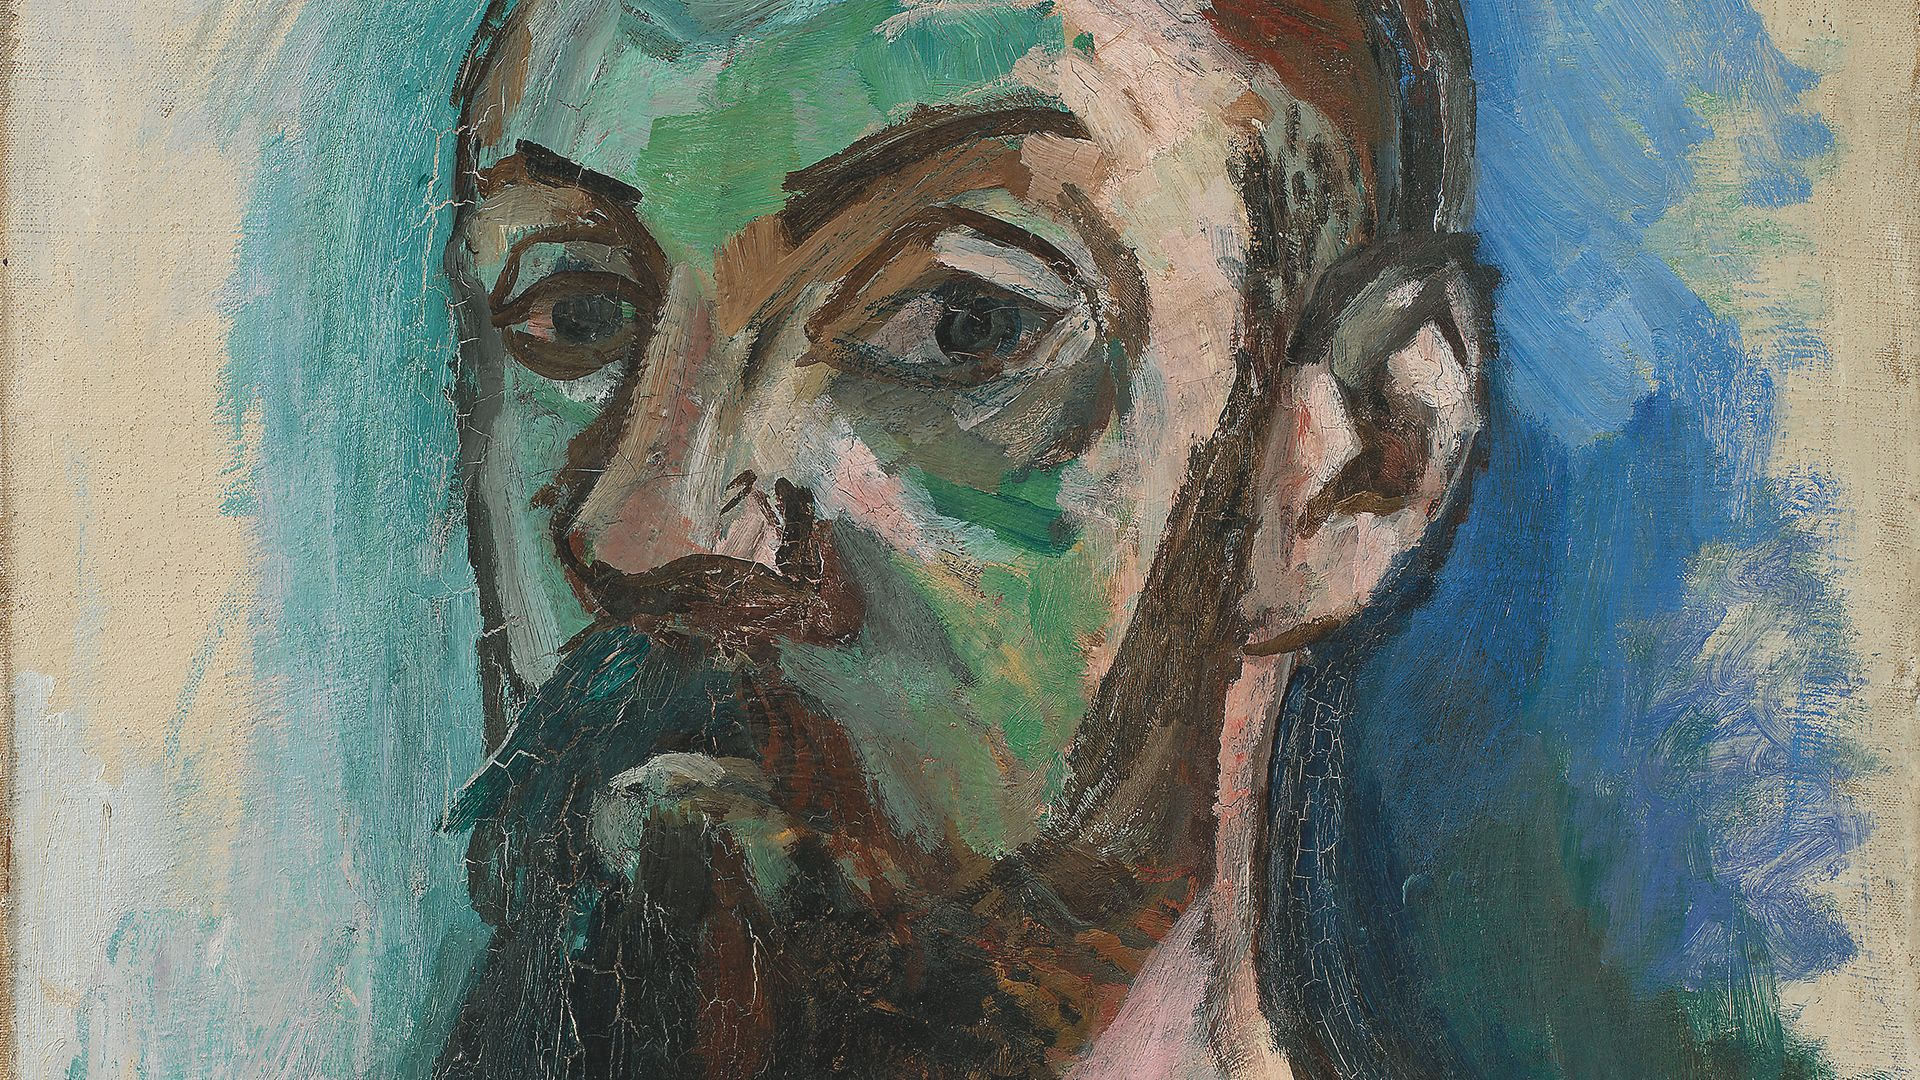 Matisse was labelled a Fauve - 'wild beast' - at the 1905 Salon d'Automne, where audiences were shocked by his non-naturalistic colours - Credit: Statens Museum for Kunst; the National Gallery of Denmark